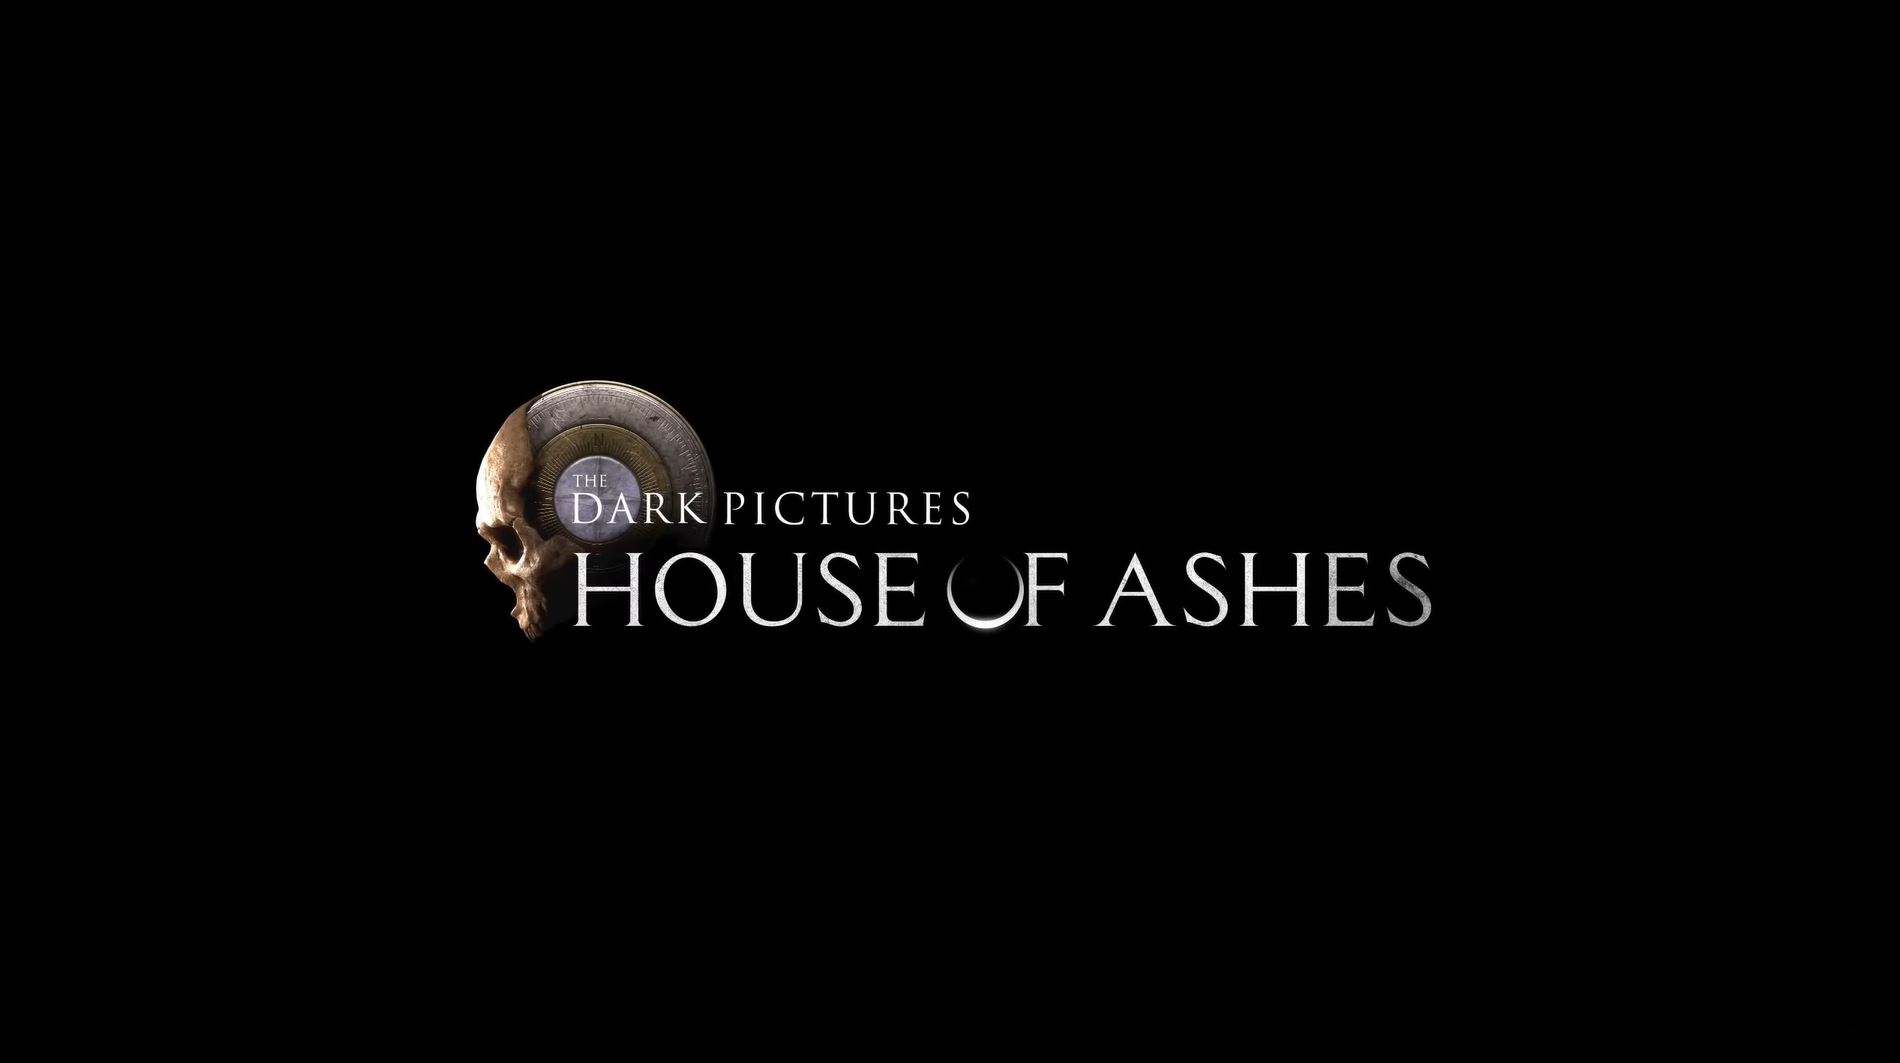 the-dark-pictures-house-of-ashes-ps5-ps4-news-reviews-videos